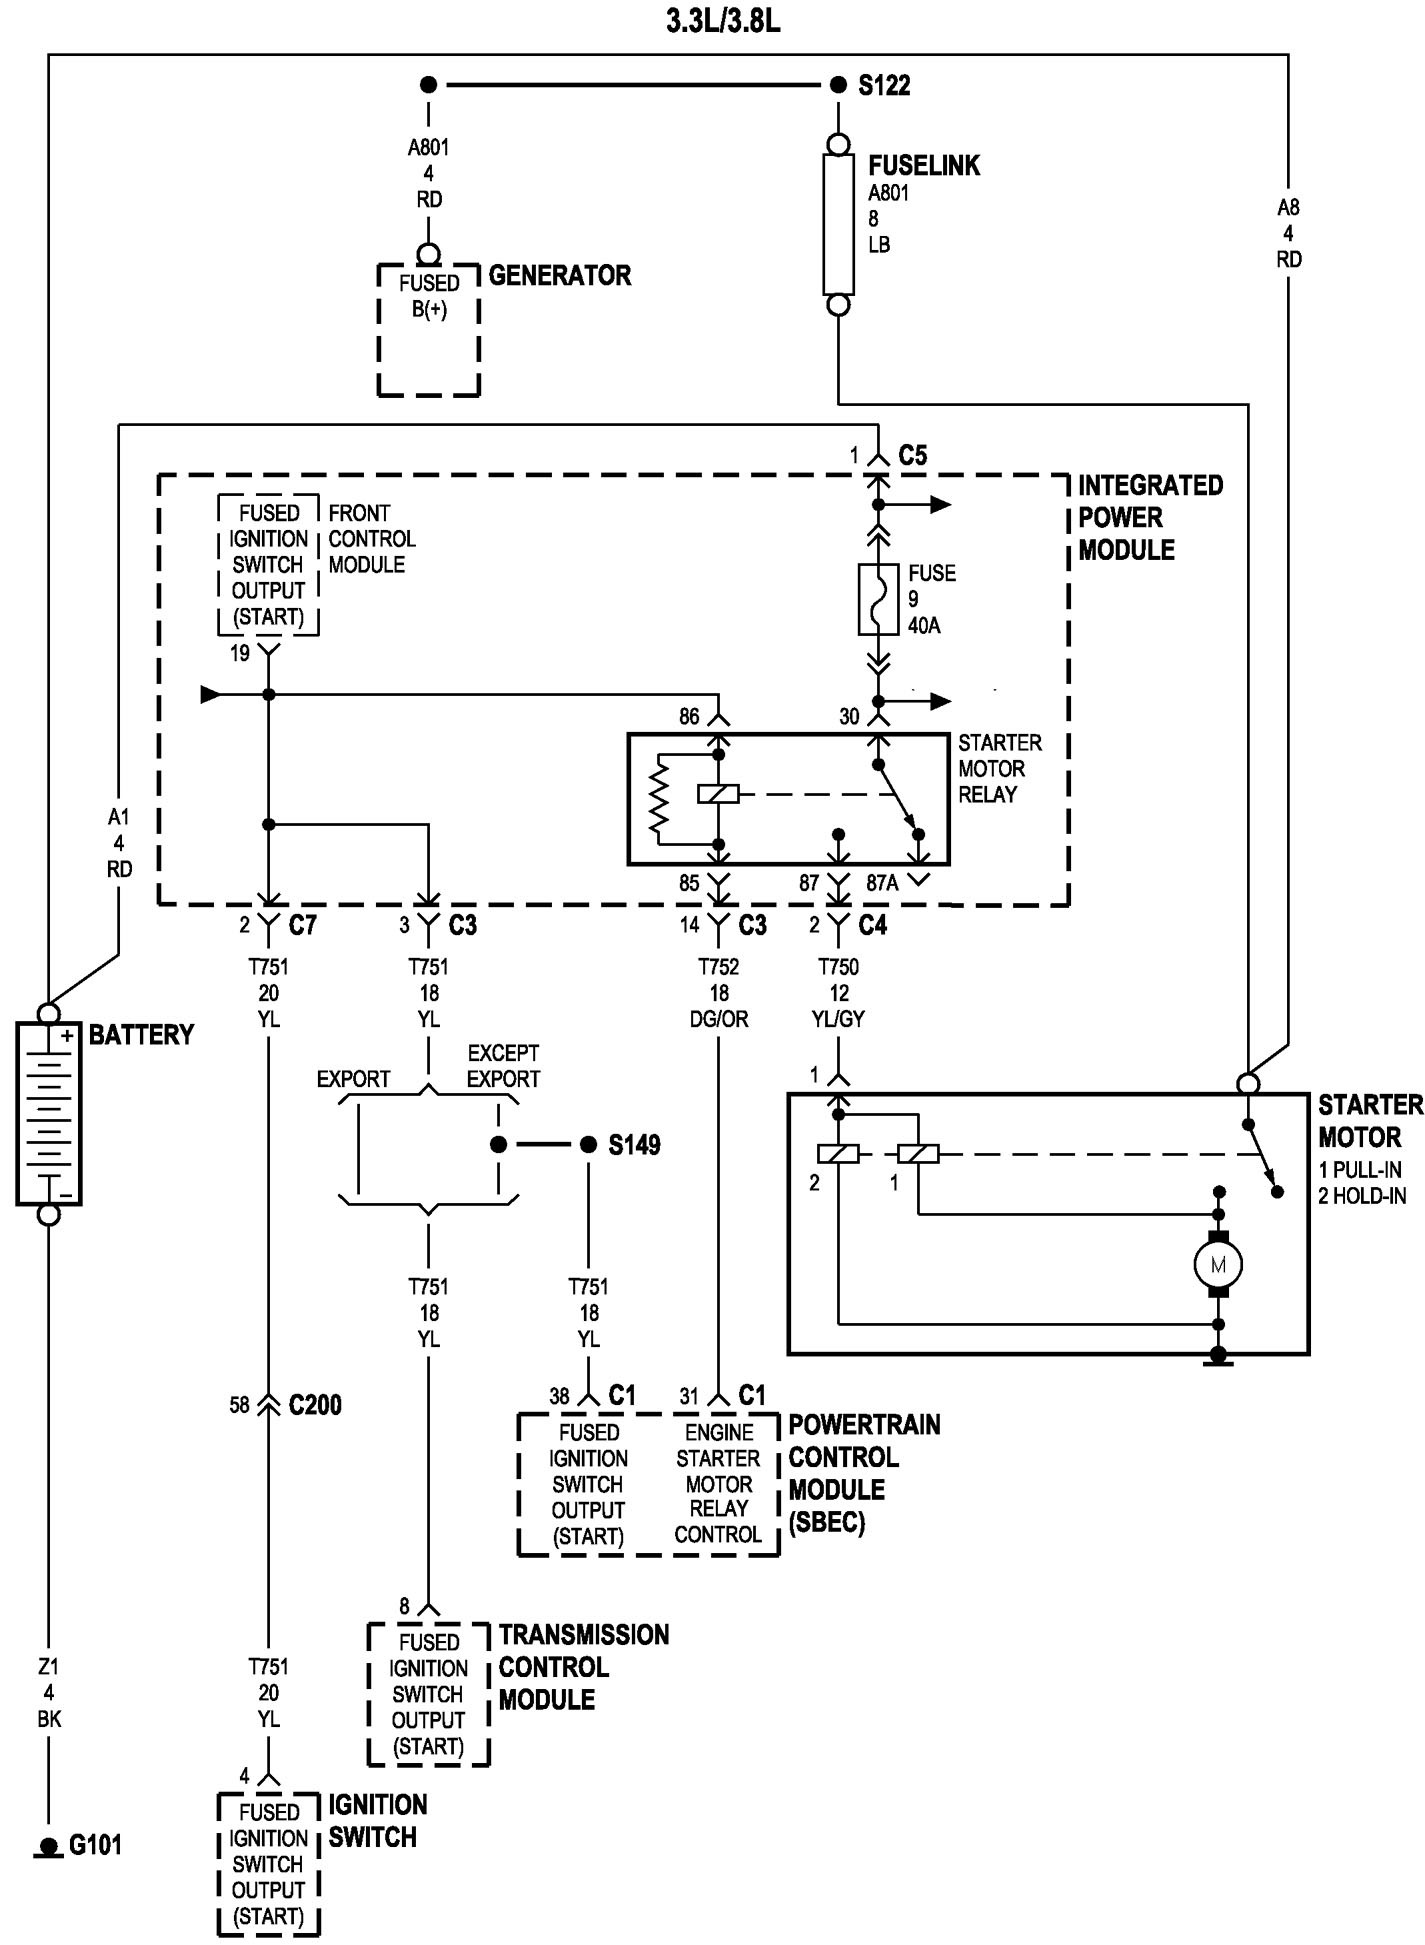 2001 caravan wiring diagram ignition